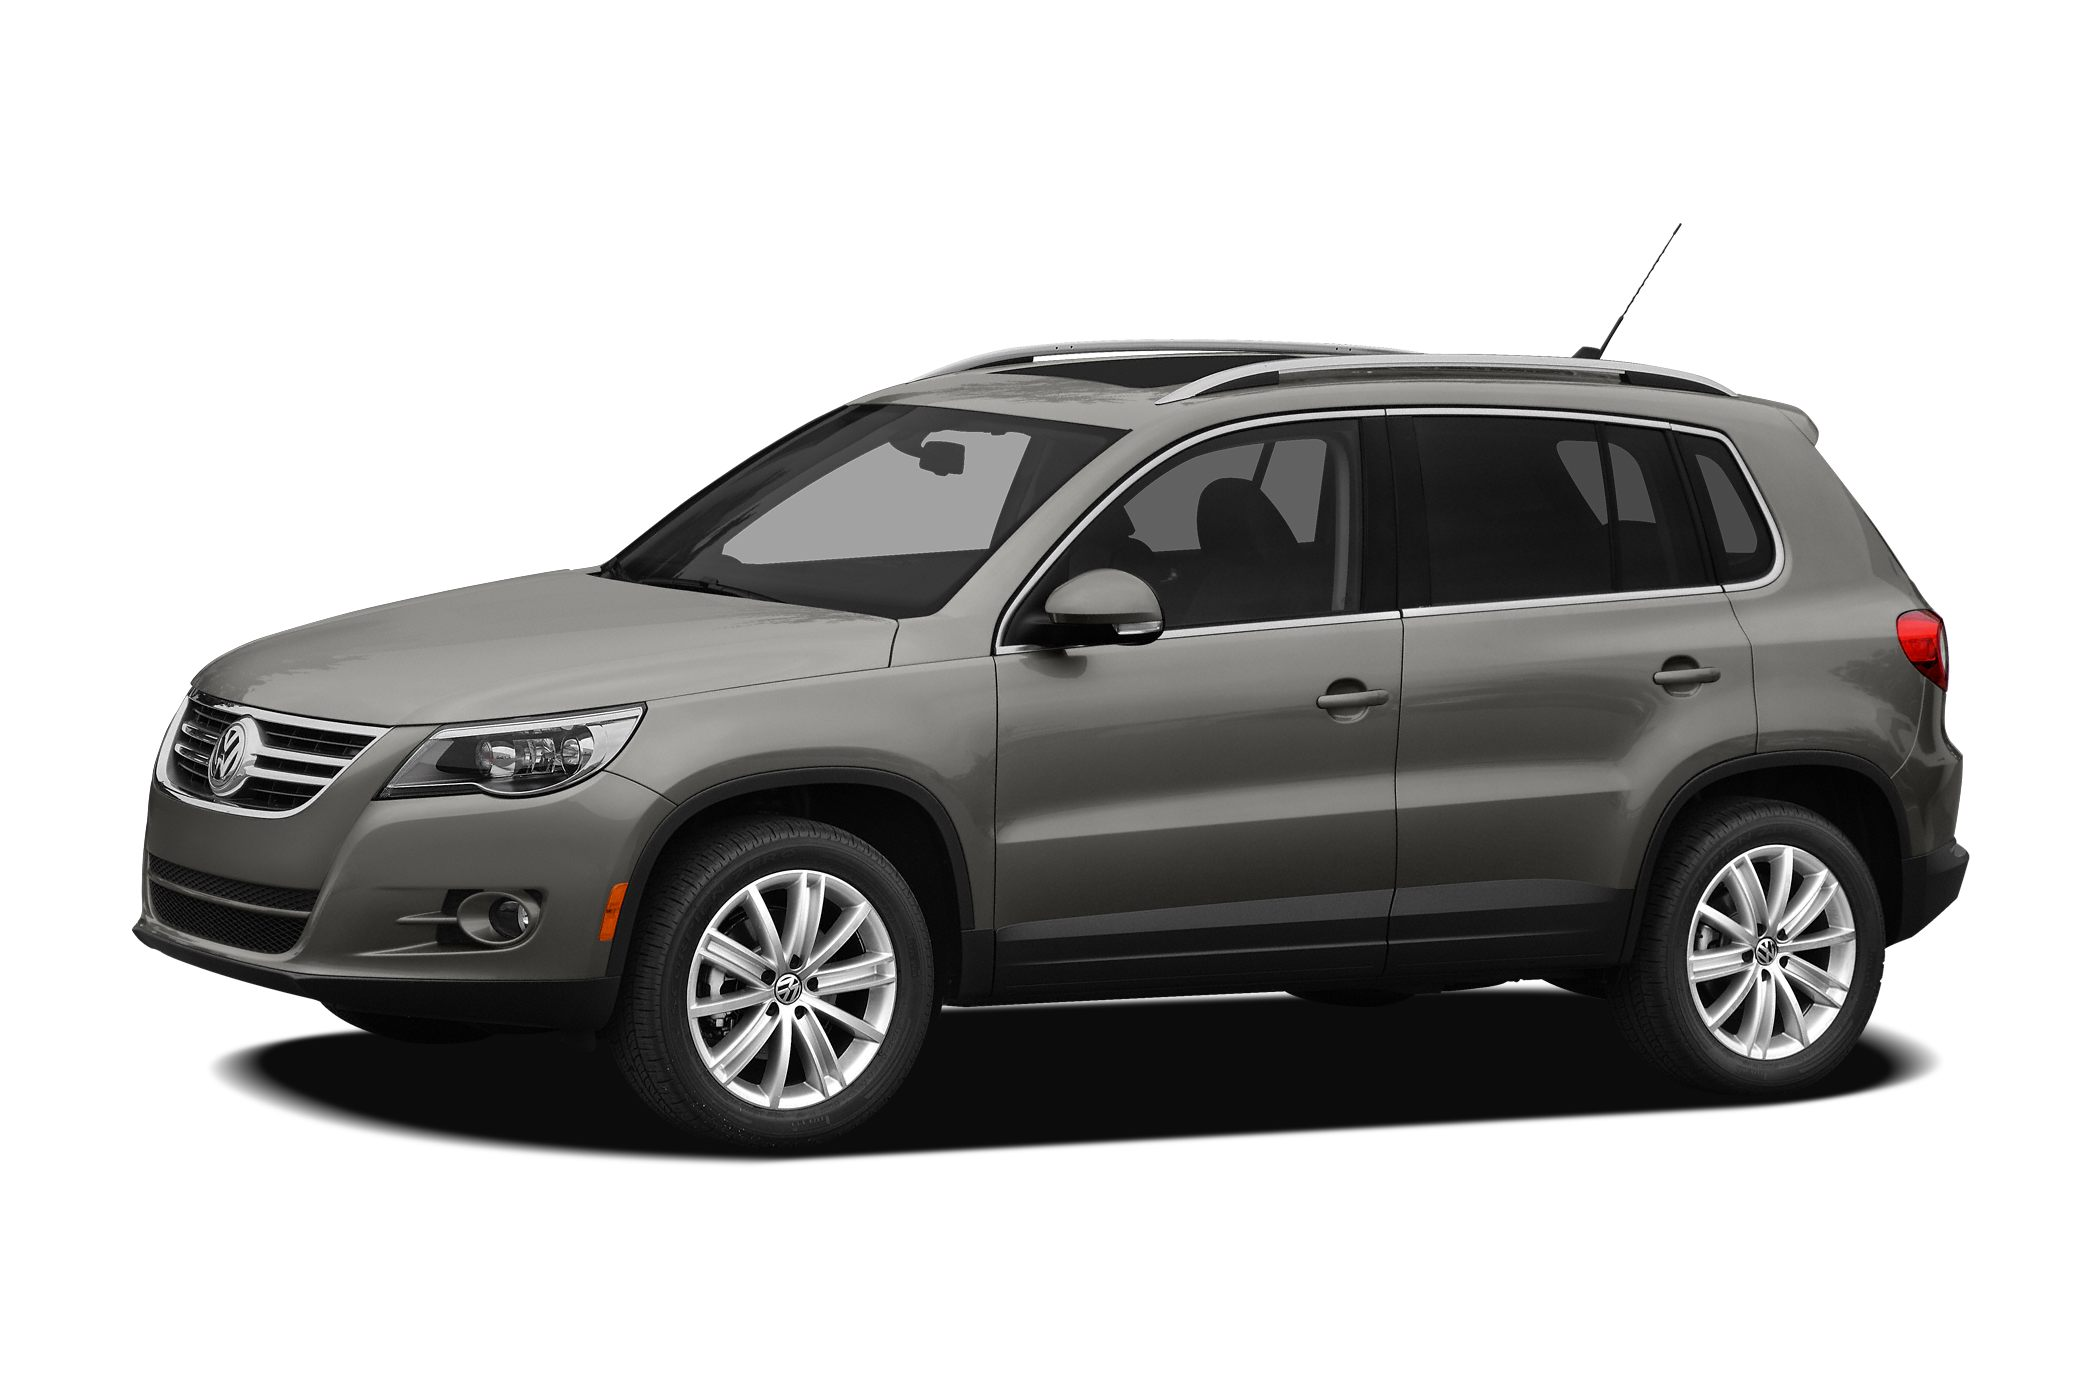 USC00VWS032B0101 Interesting Info About 2018 Vw Tiguan R Line with Mesmerizing Pictures Cars Review